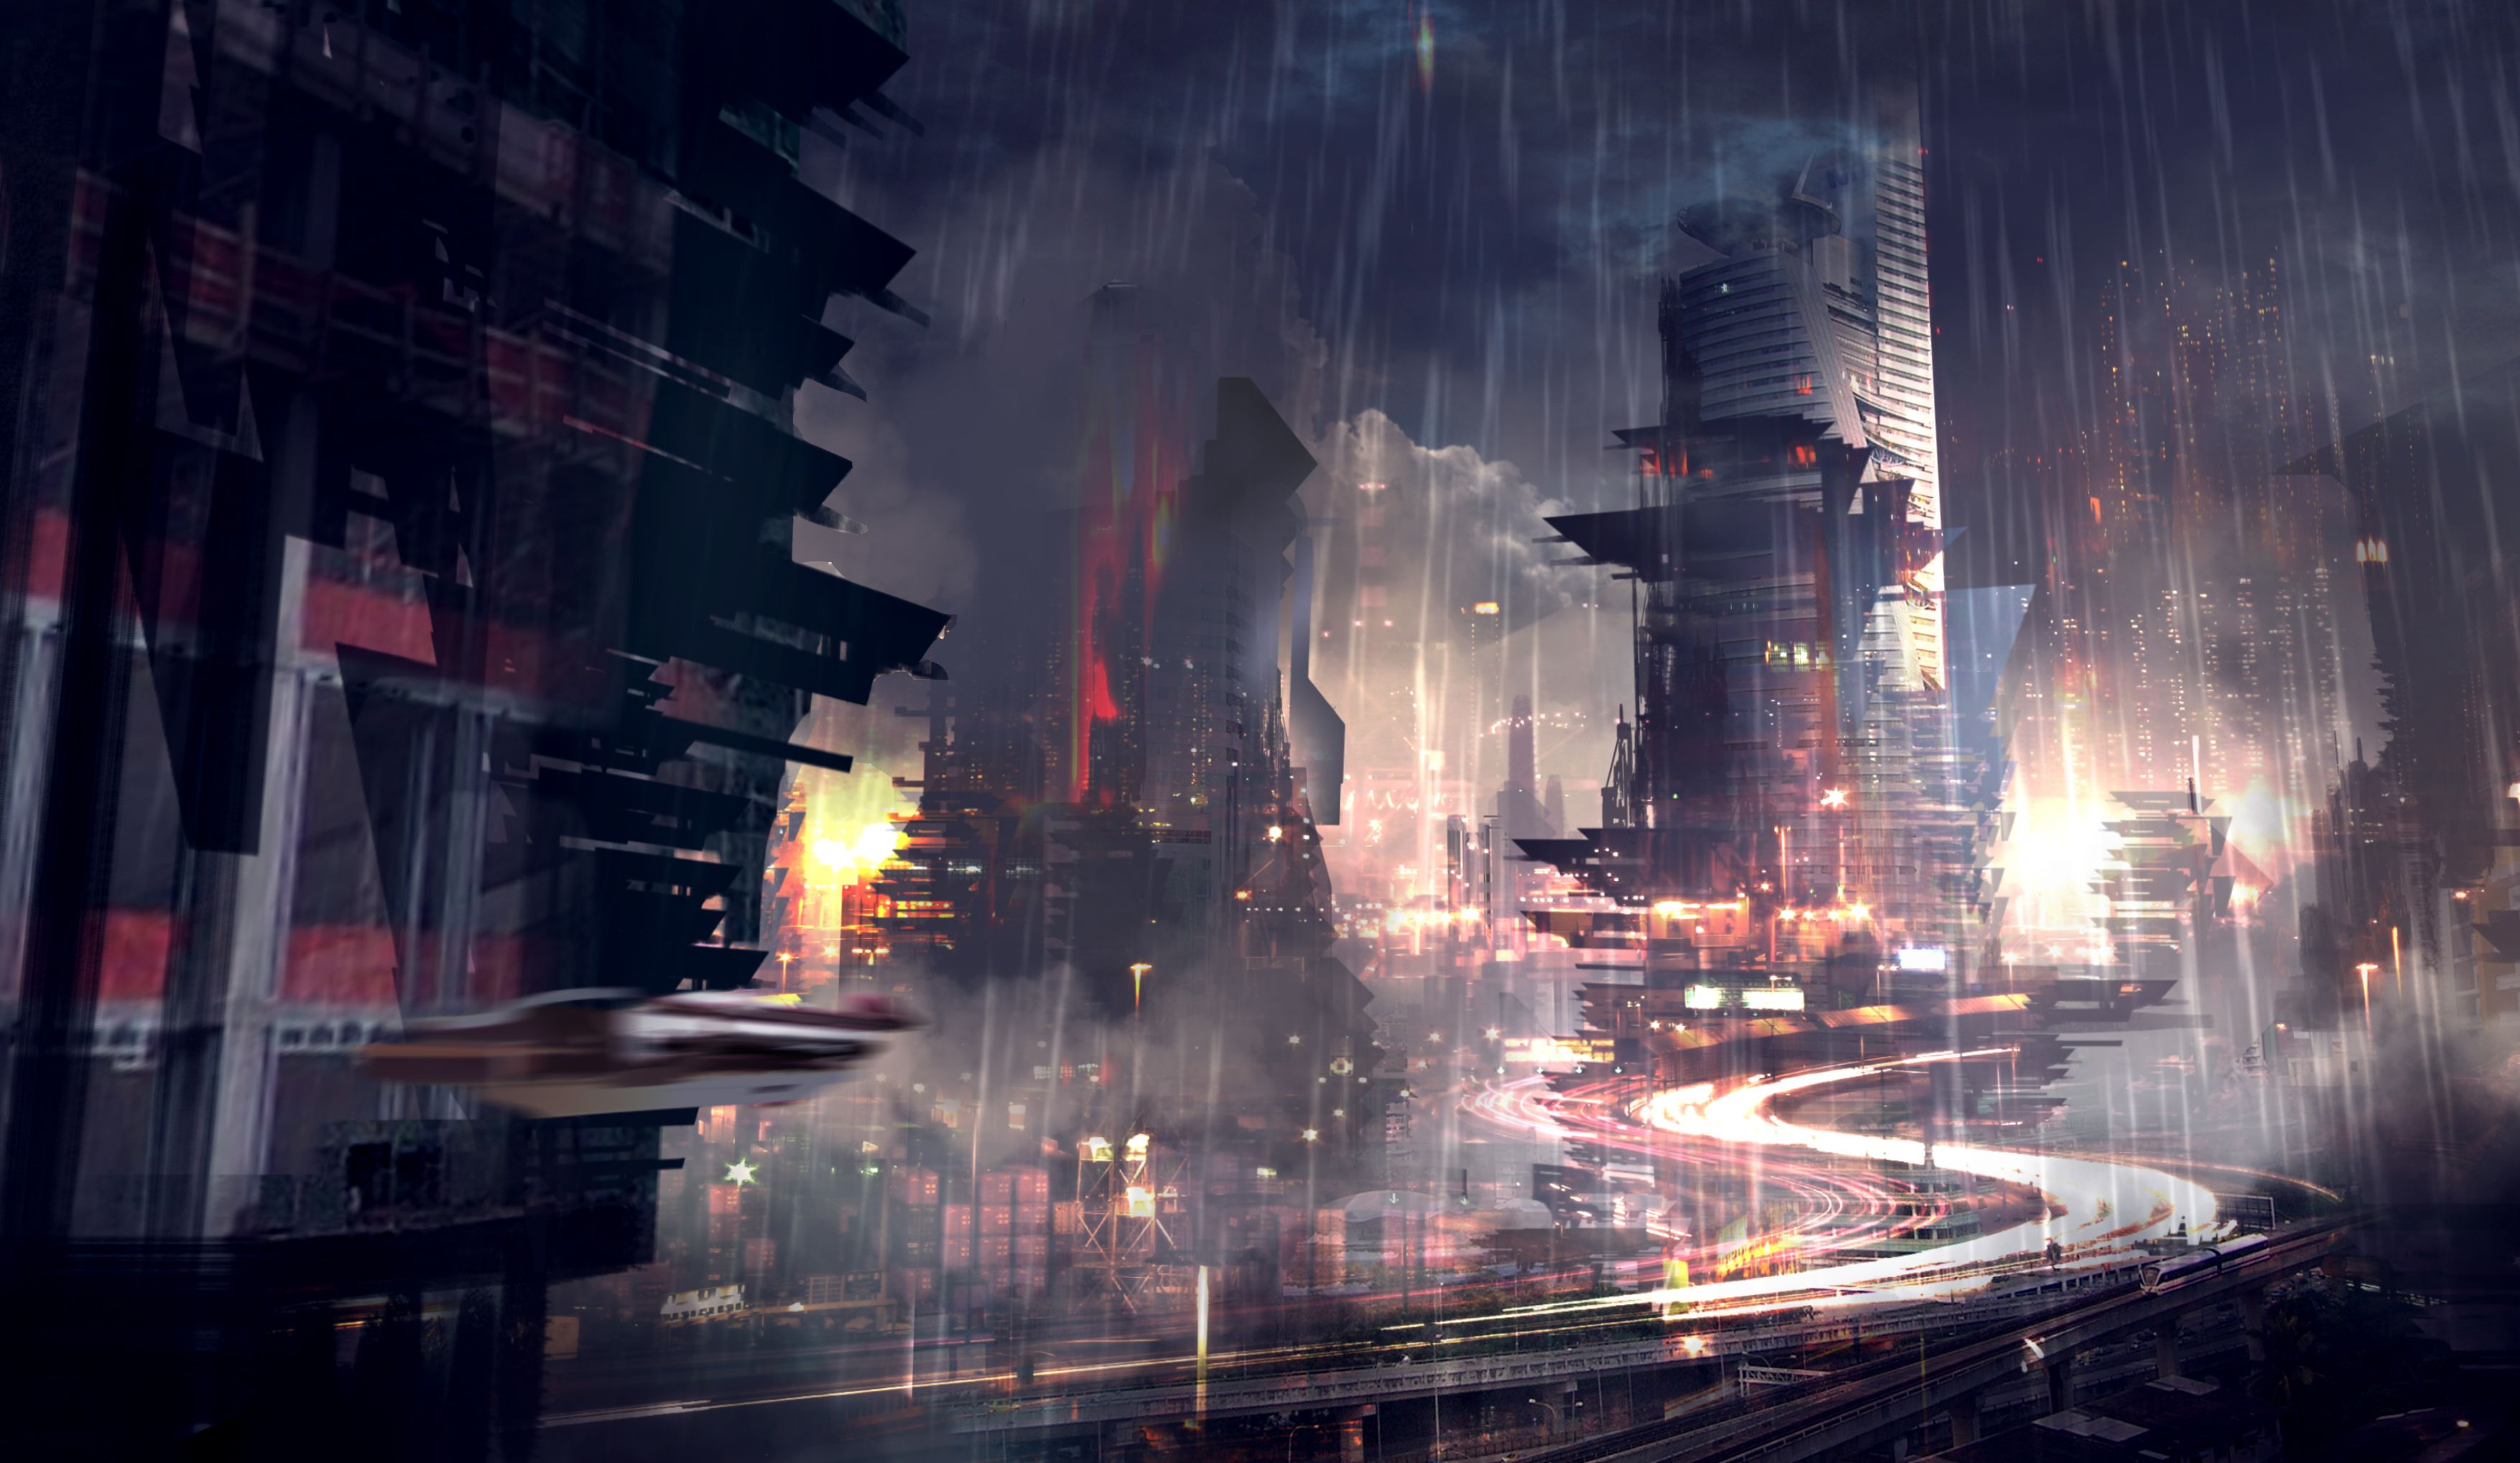 Sci Fi City Wallpapers Top Free Sci Fi City Backgrounds